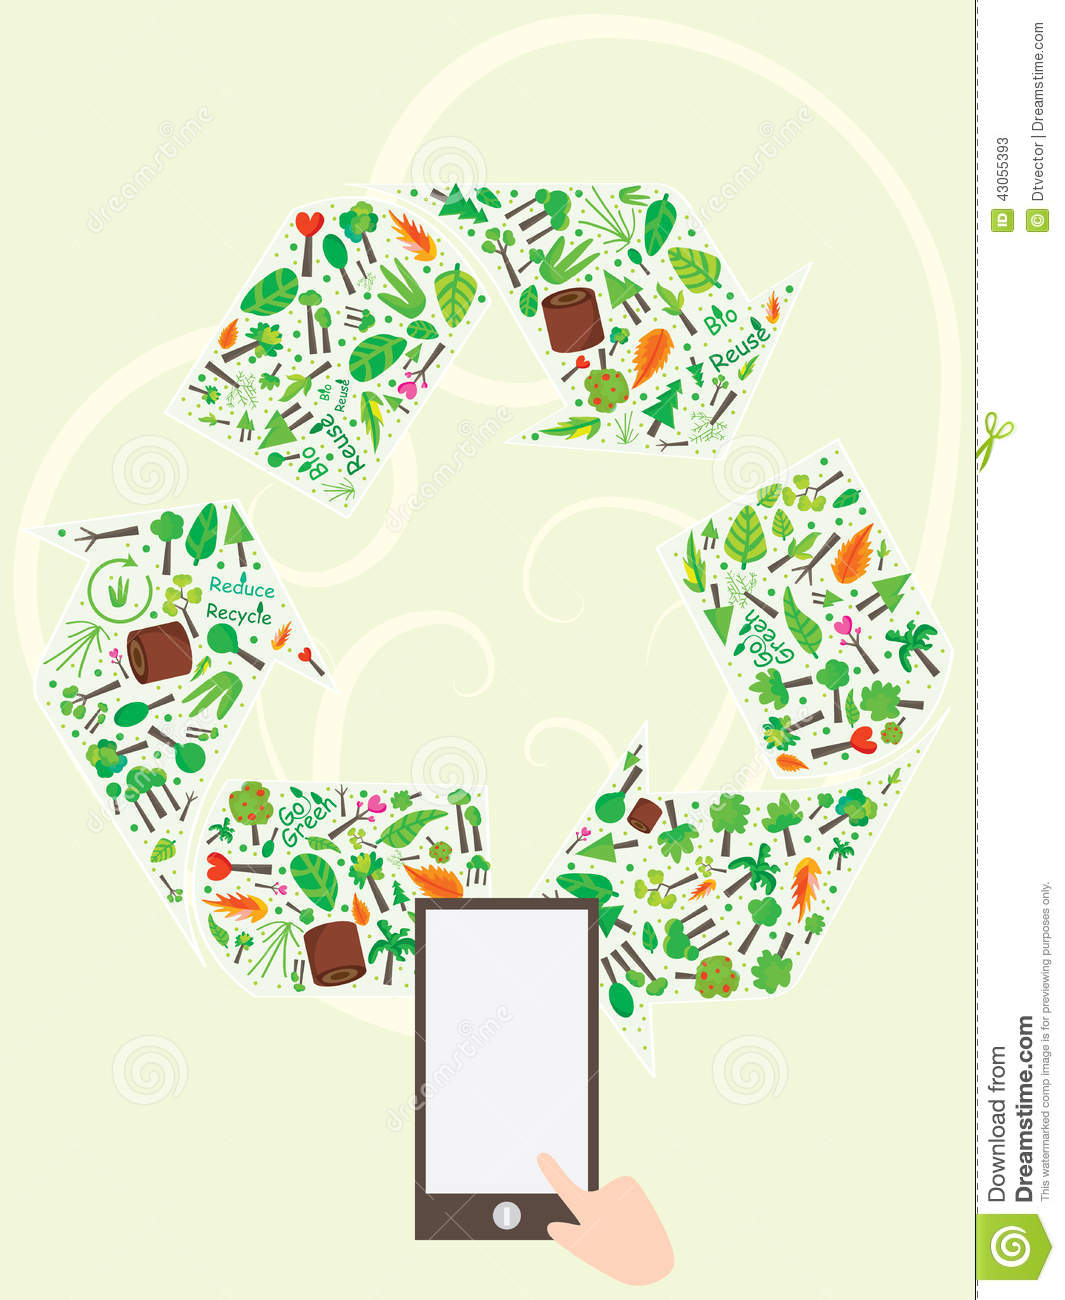 Recycle Icon Tree Page stock vector. Illustration of borders - 43055393